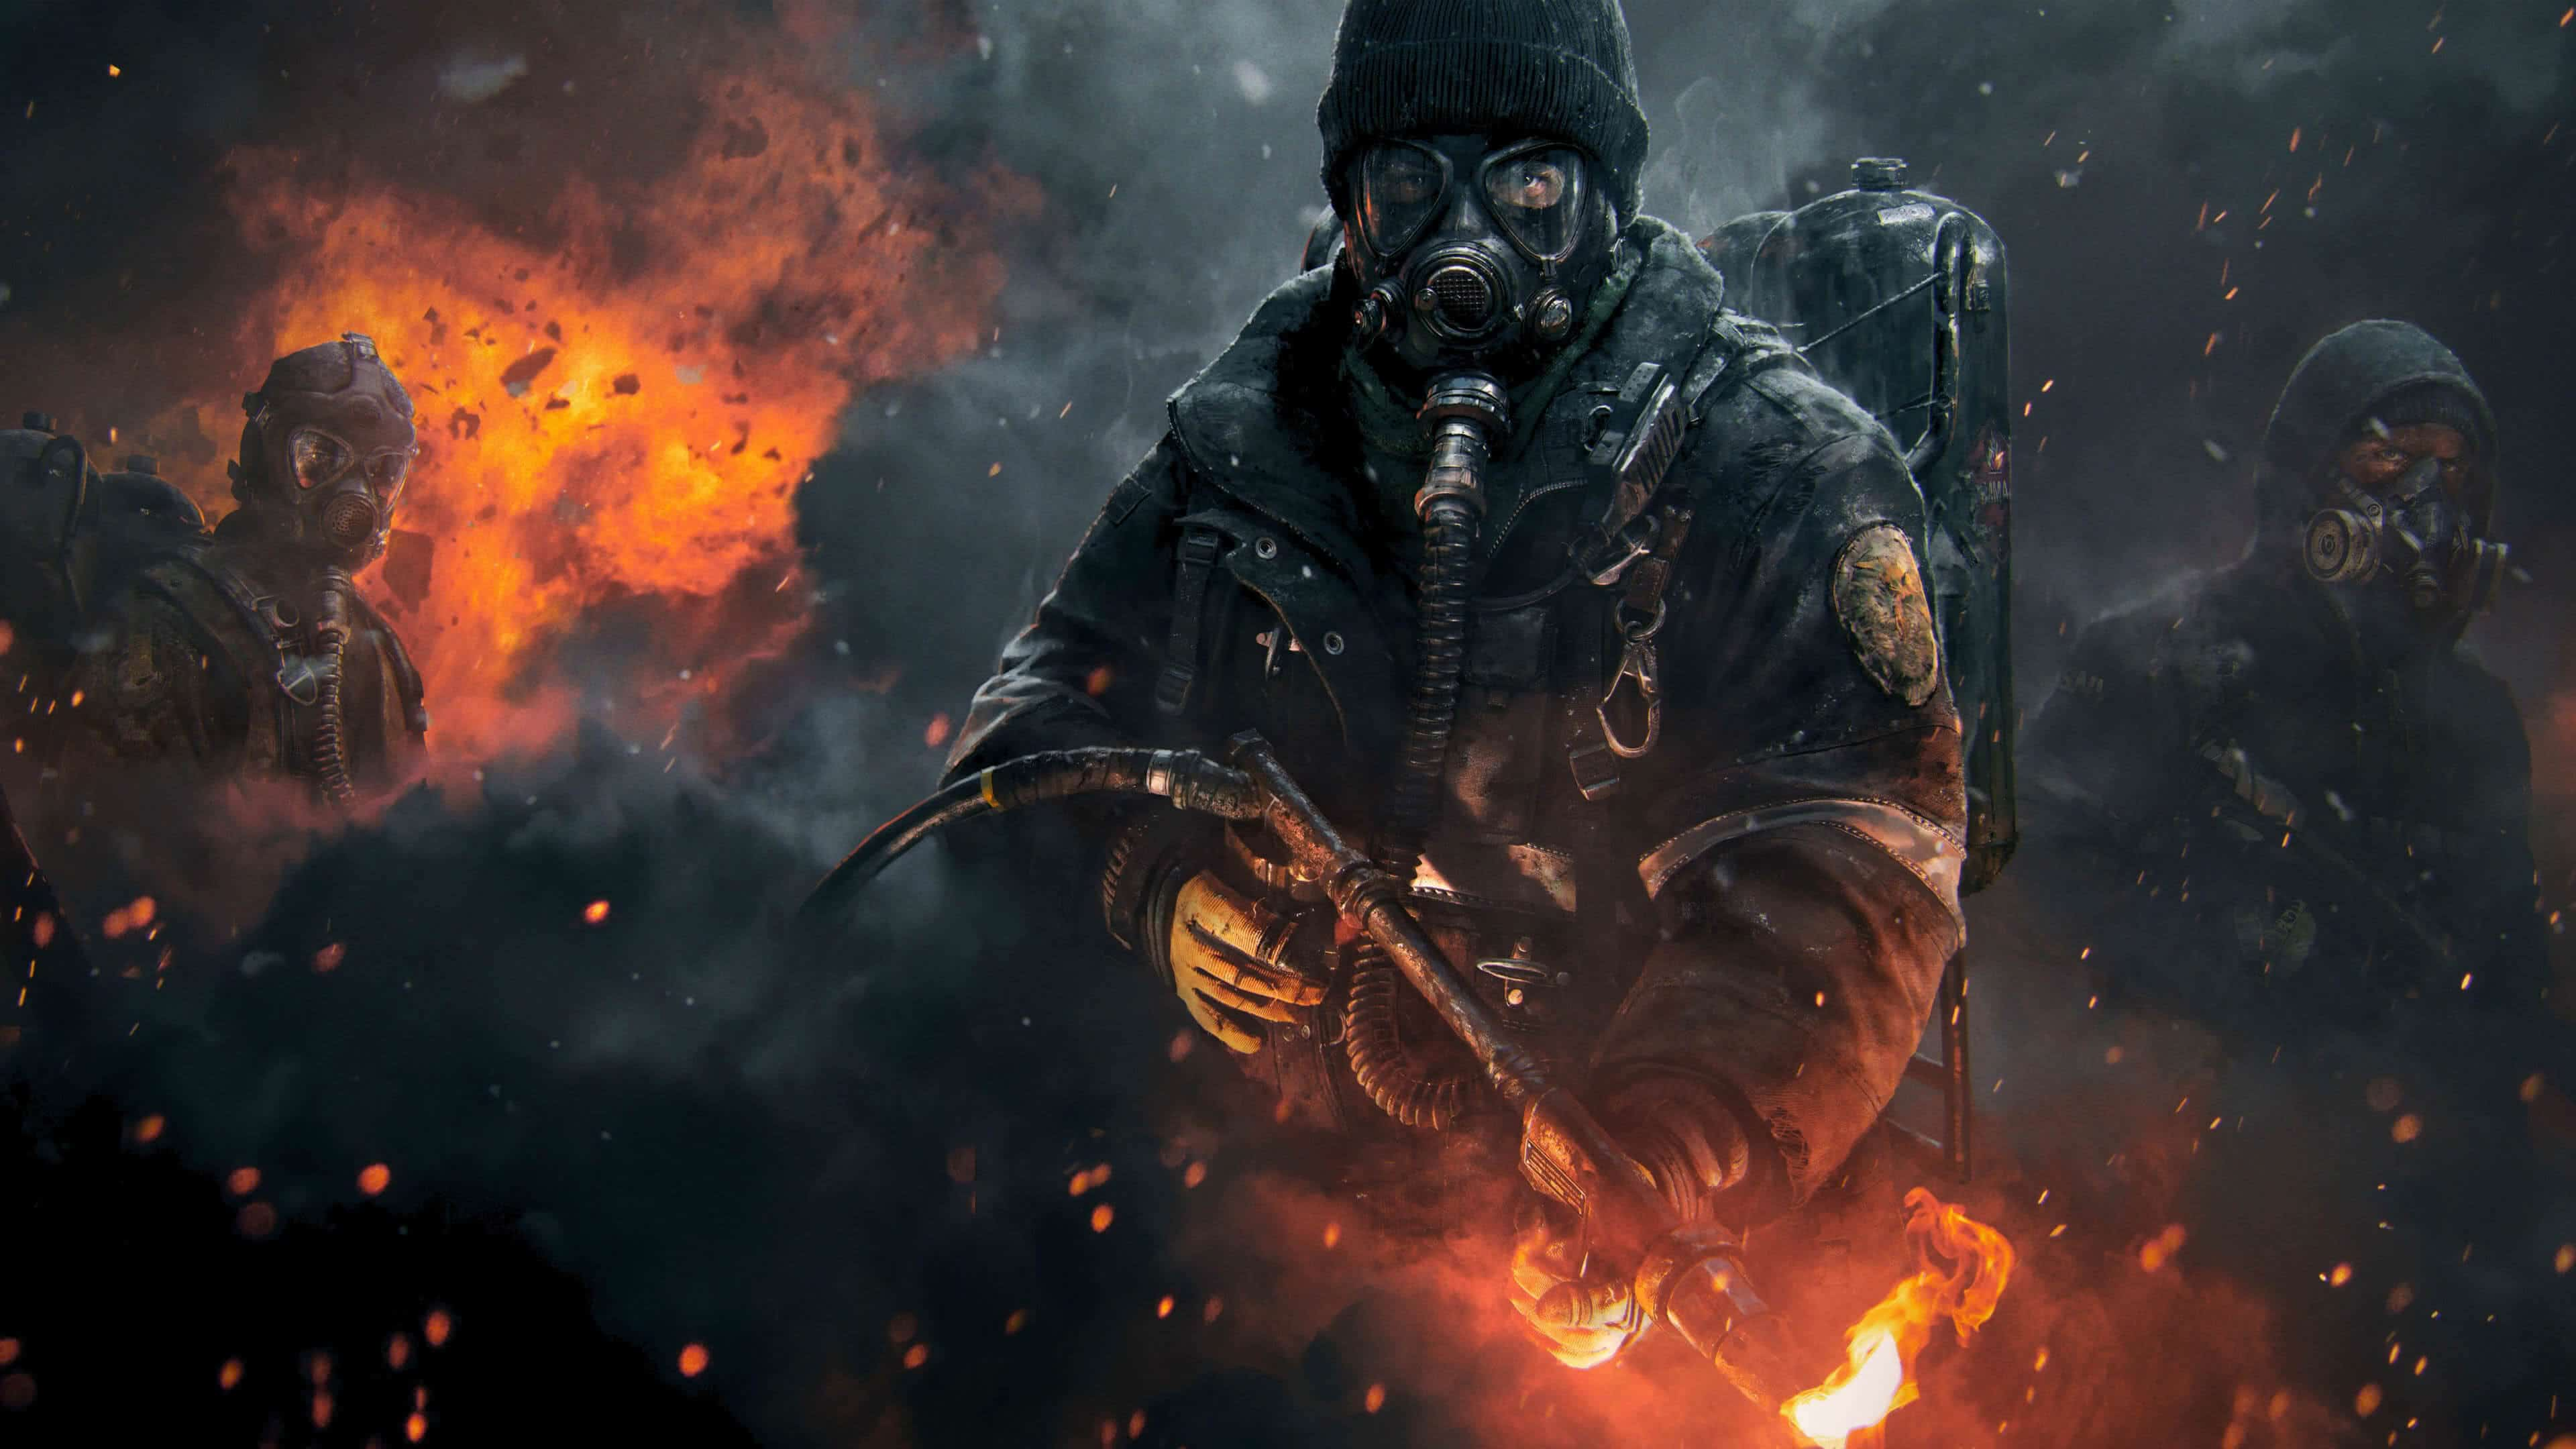 Tom Clancy S The Division Flame Thrower Uhd 4k Wallpaper Pixelz